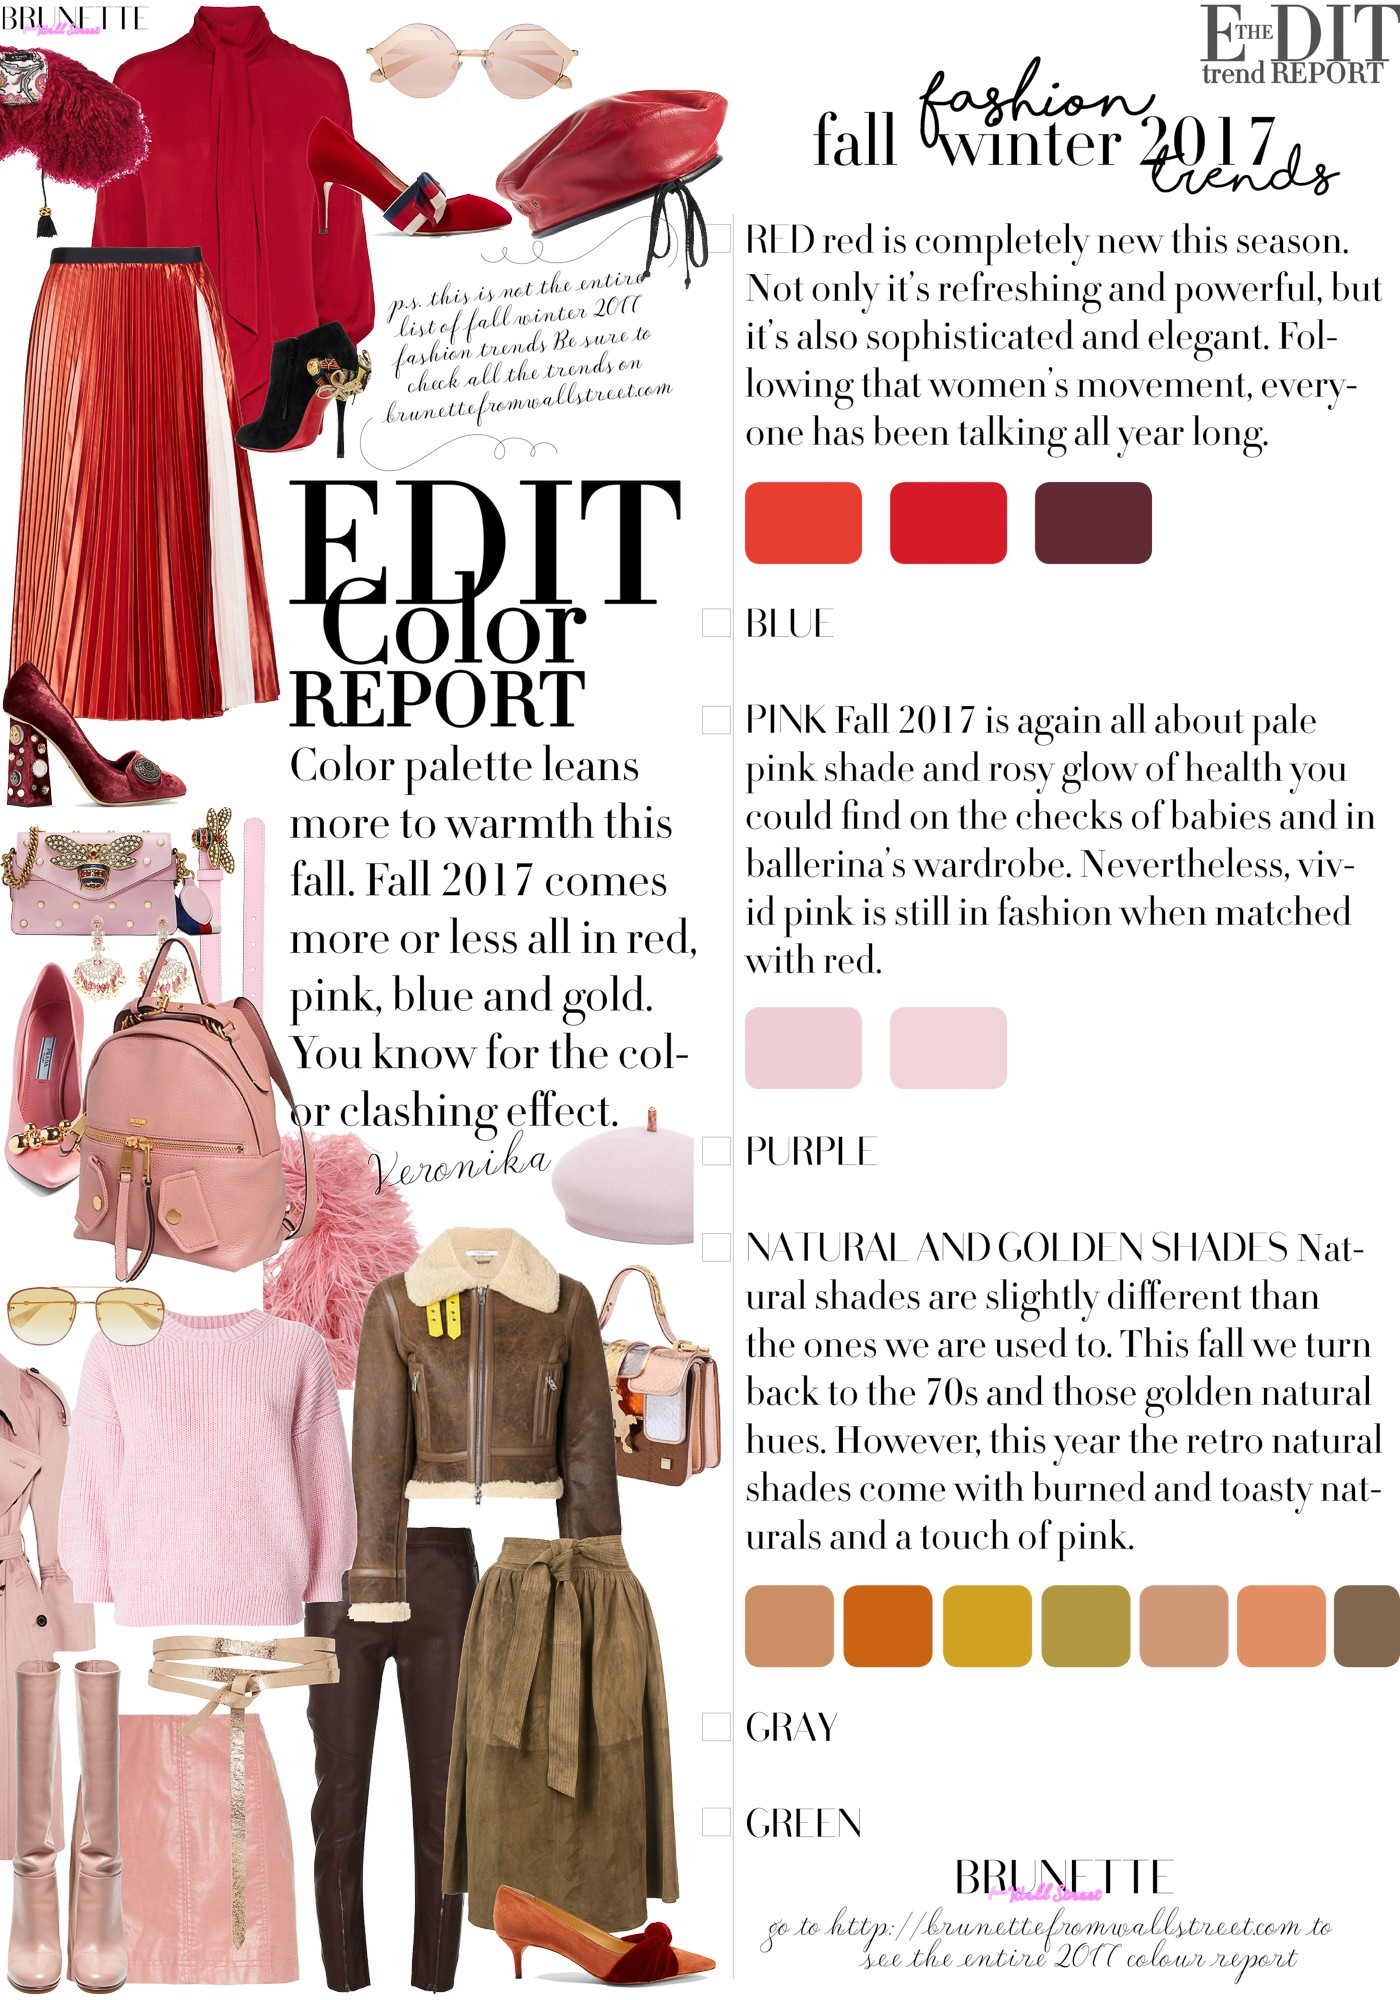 In Short The Color Palette Leans More To Warmth This Fall 2017 Comes Or Less All Red Pink Blue And Gold You Know For Clashing